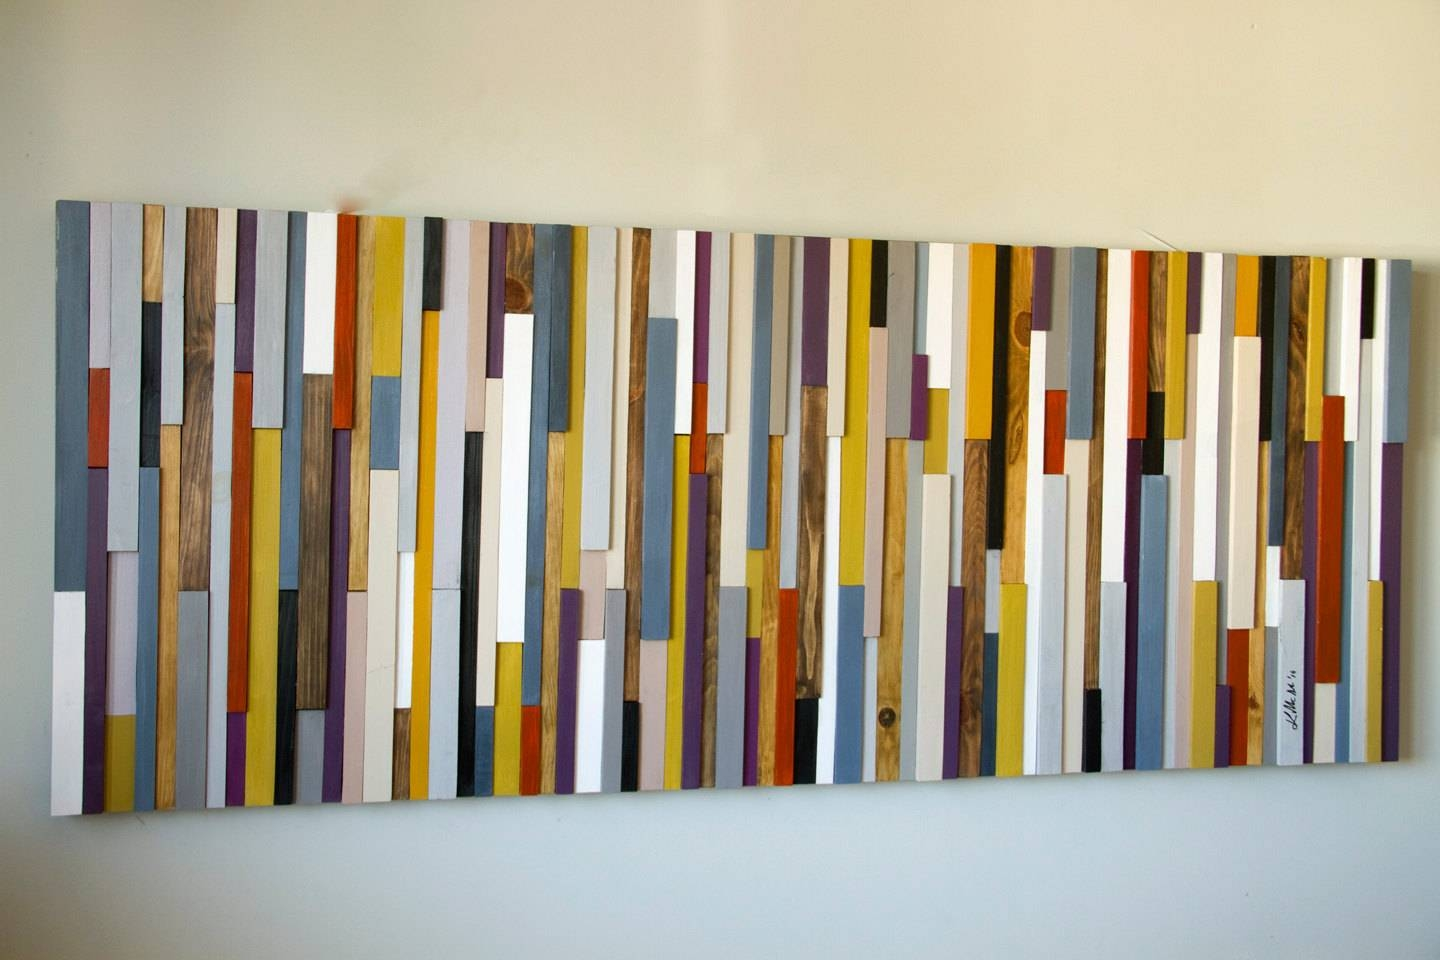 Reclaimed Wood Art, Wood Wall Art Sculpture, Painted Wood Art Throughout Most Popular Aubergine Wall Art (View 19 of 20)